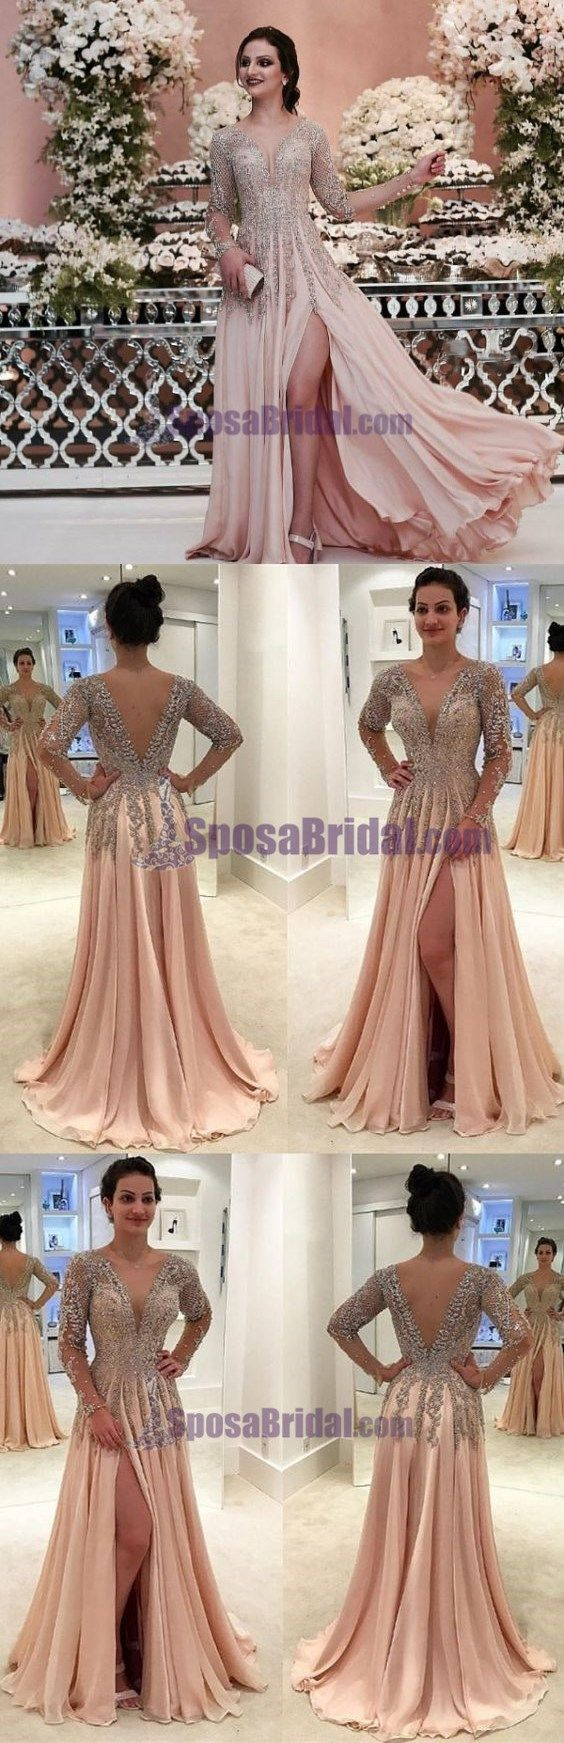 2018 Deep V Back Most Popular Beaded Long Sleeves Split Fashion Modest Prom Dresses, Party dresses, PD0626